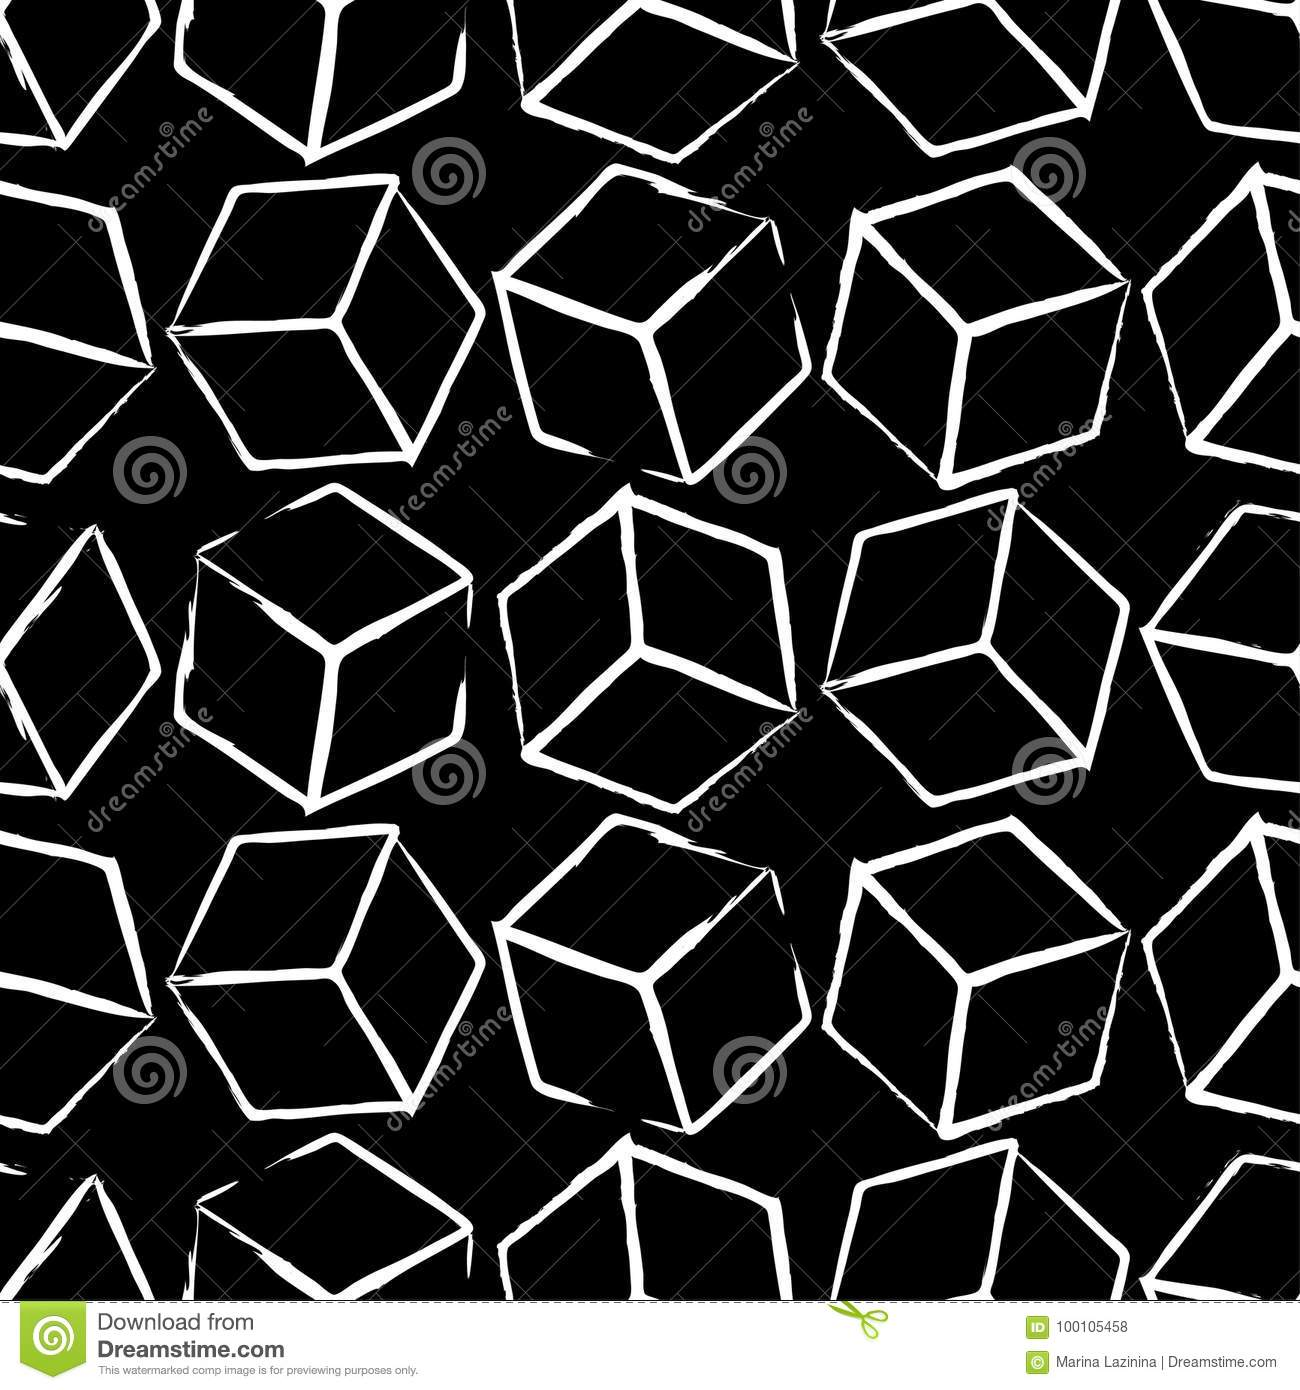 Completely seamless abstract cube pattern black and white